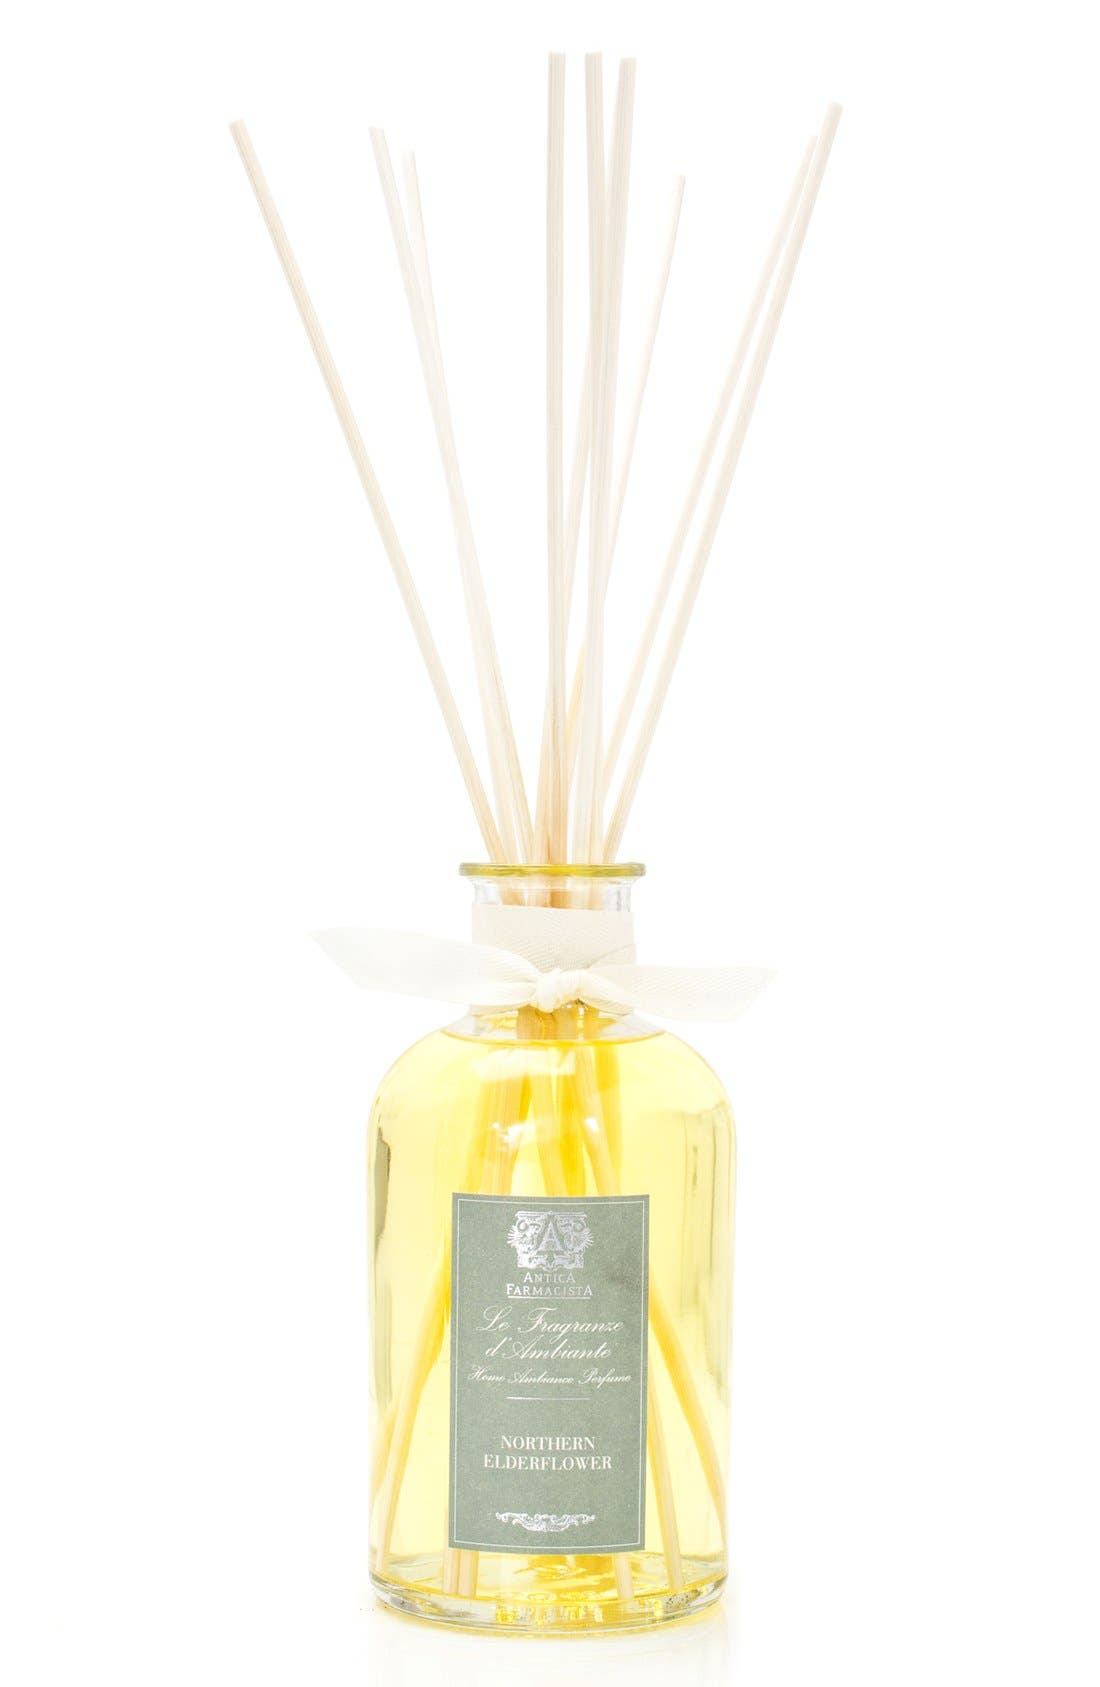 Northern Elderflower Home Ambiance Fragrance,                             Main thumbnail 1, color,                             NO COLOR